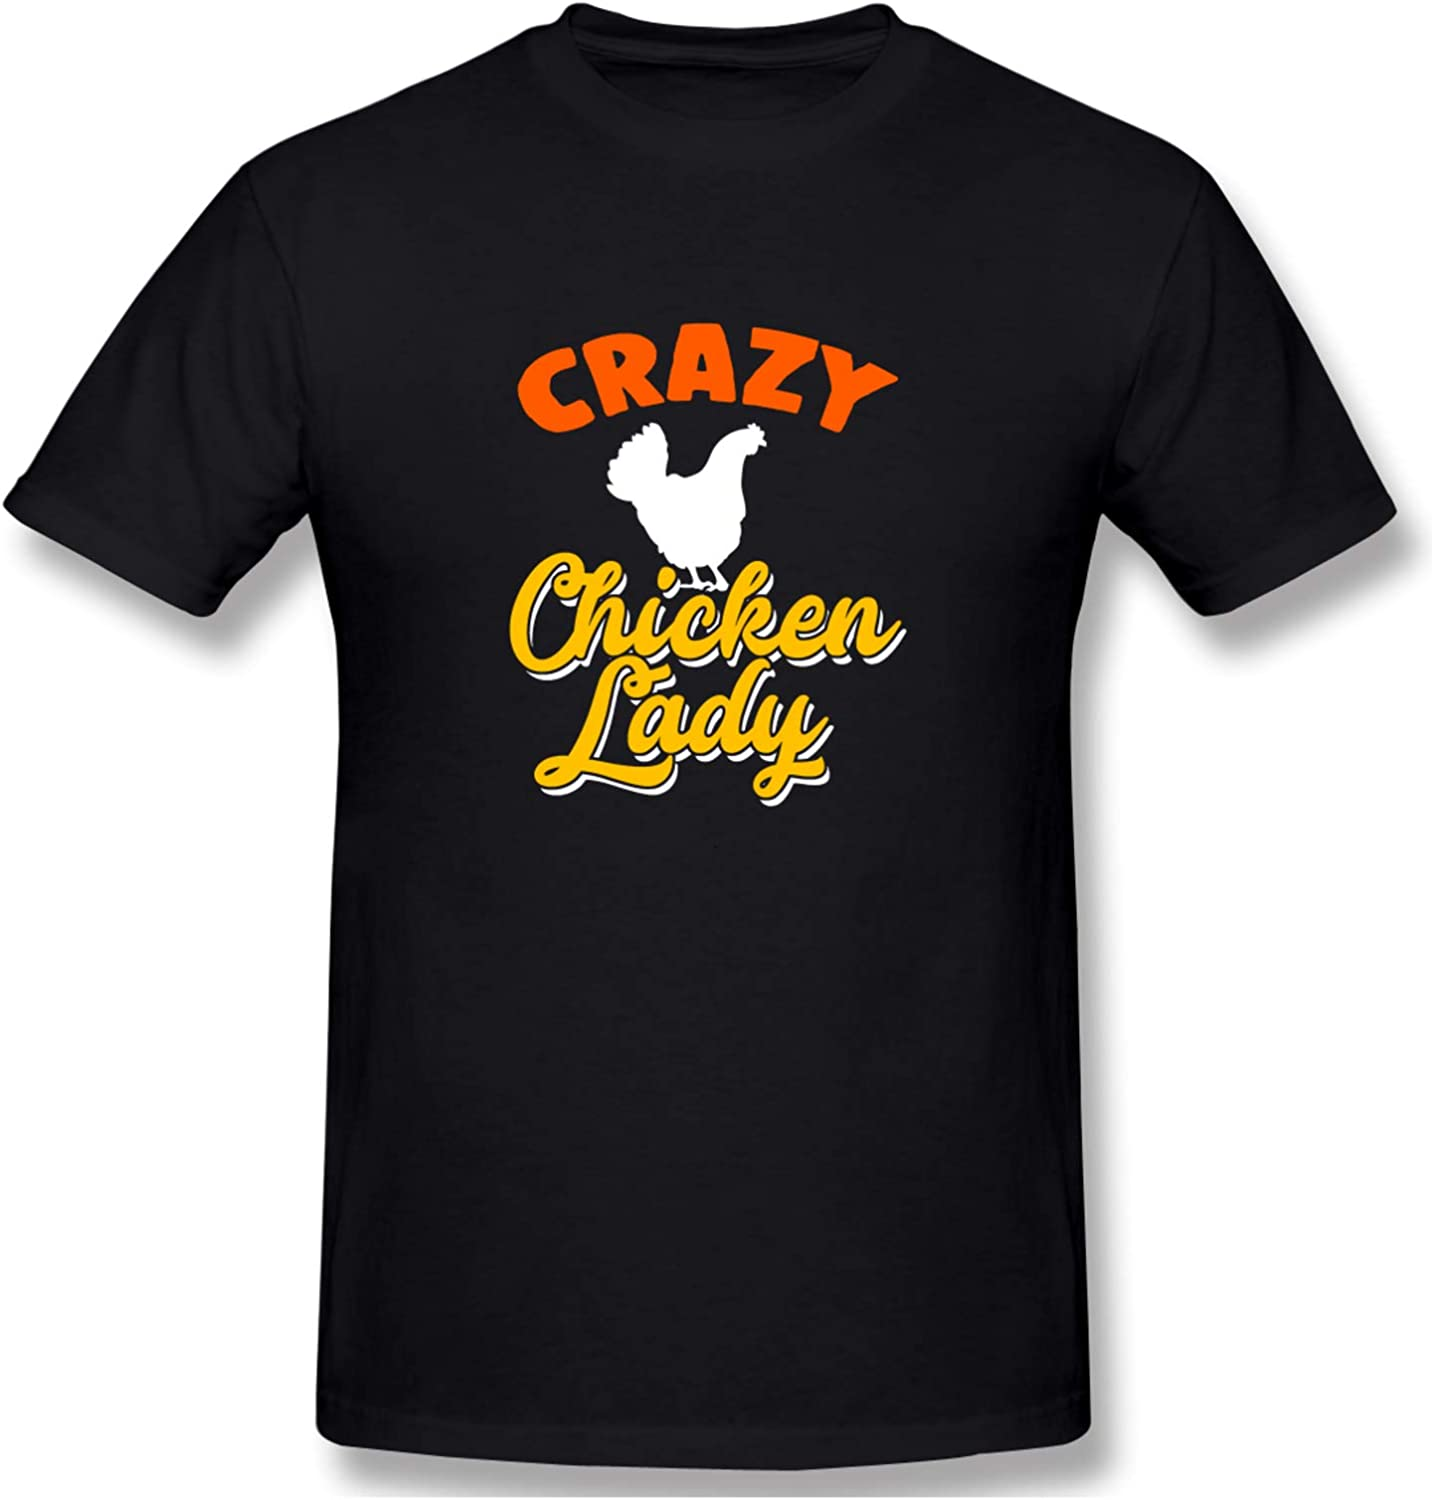 Crazy Chicken Lady Men's T-Shirts Short-Sleeve Crew Neck T Classic Tops Casual Shirt